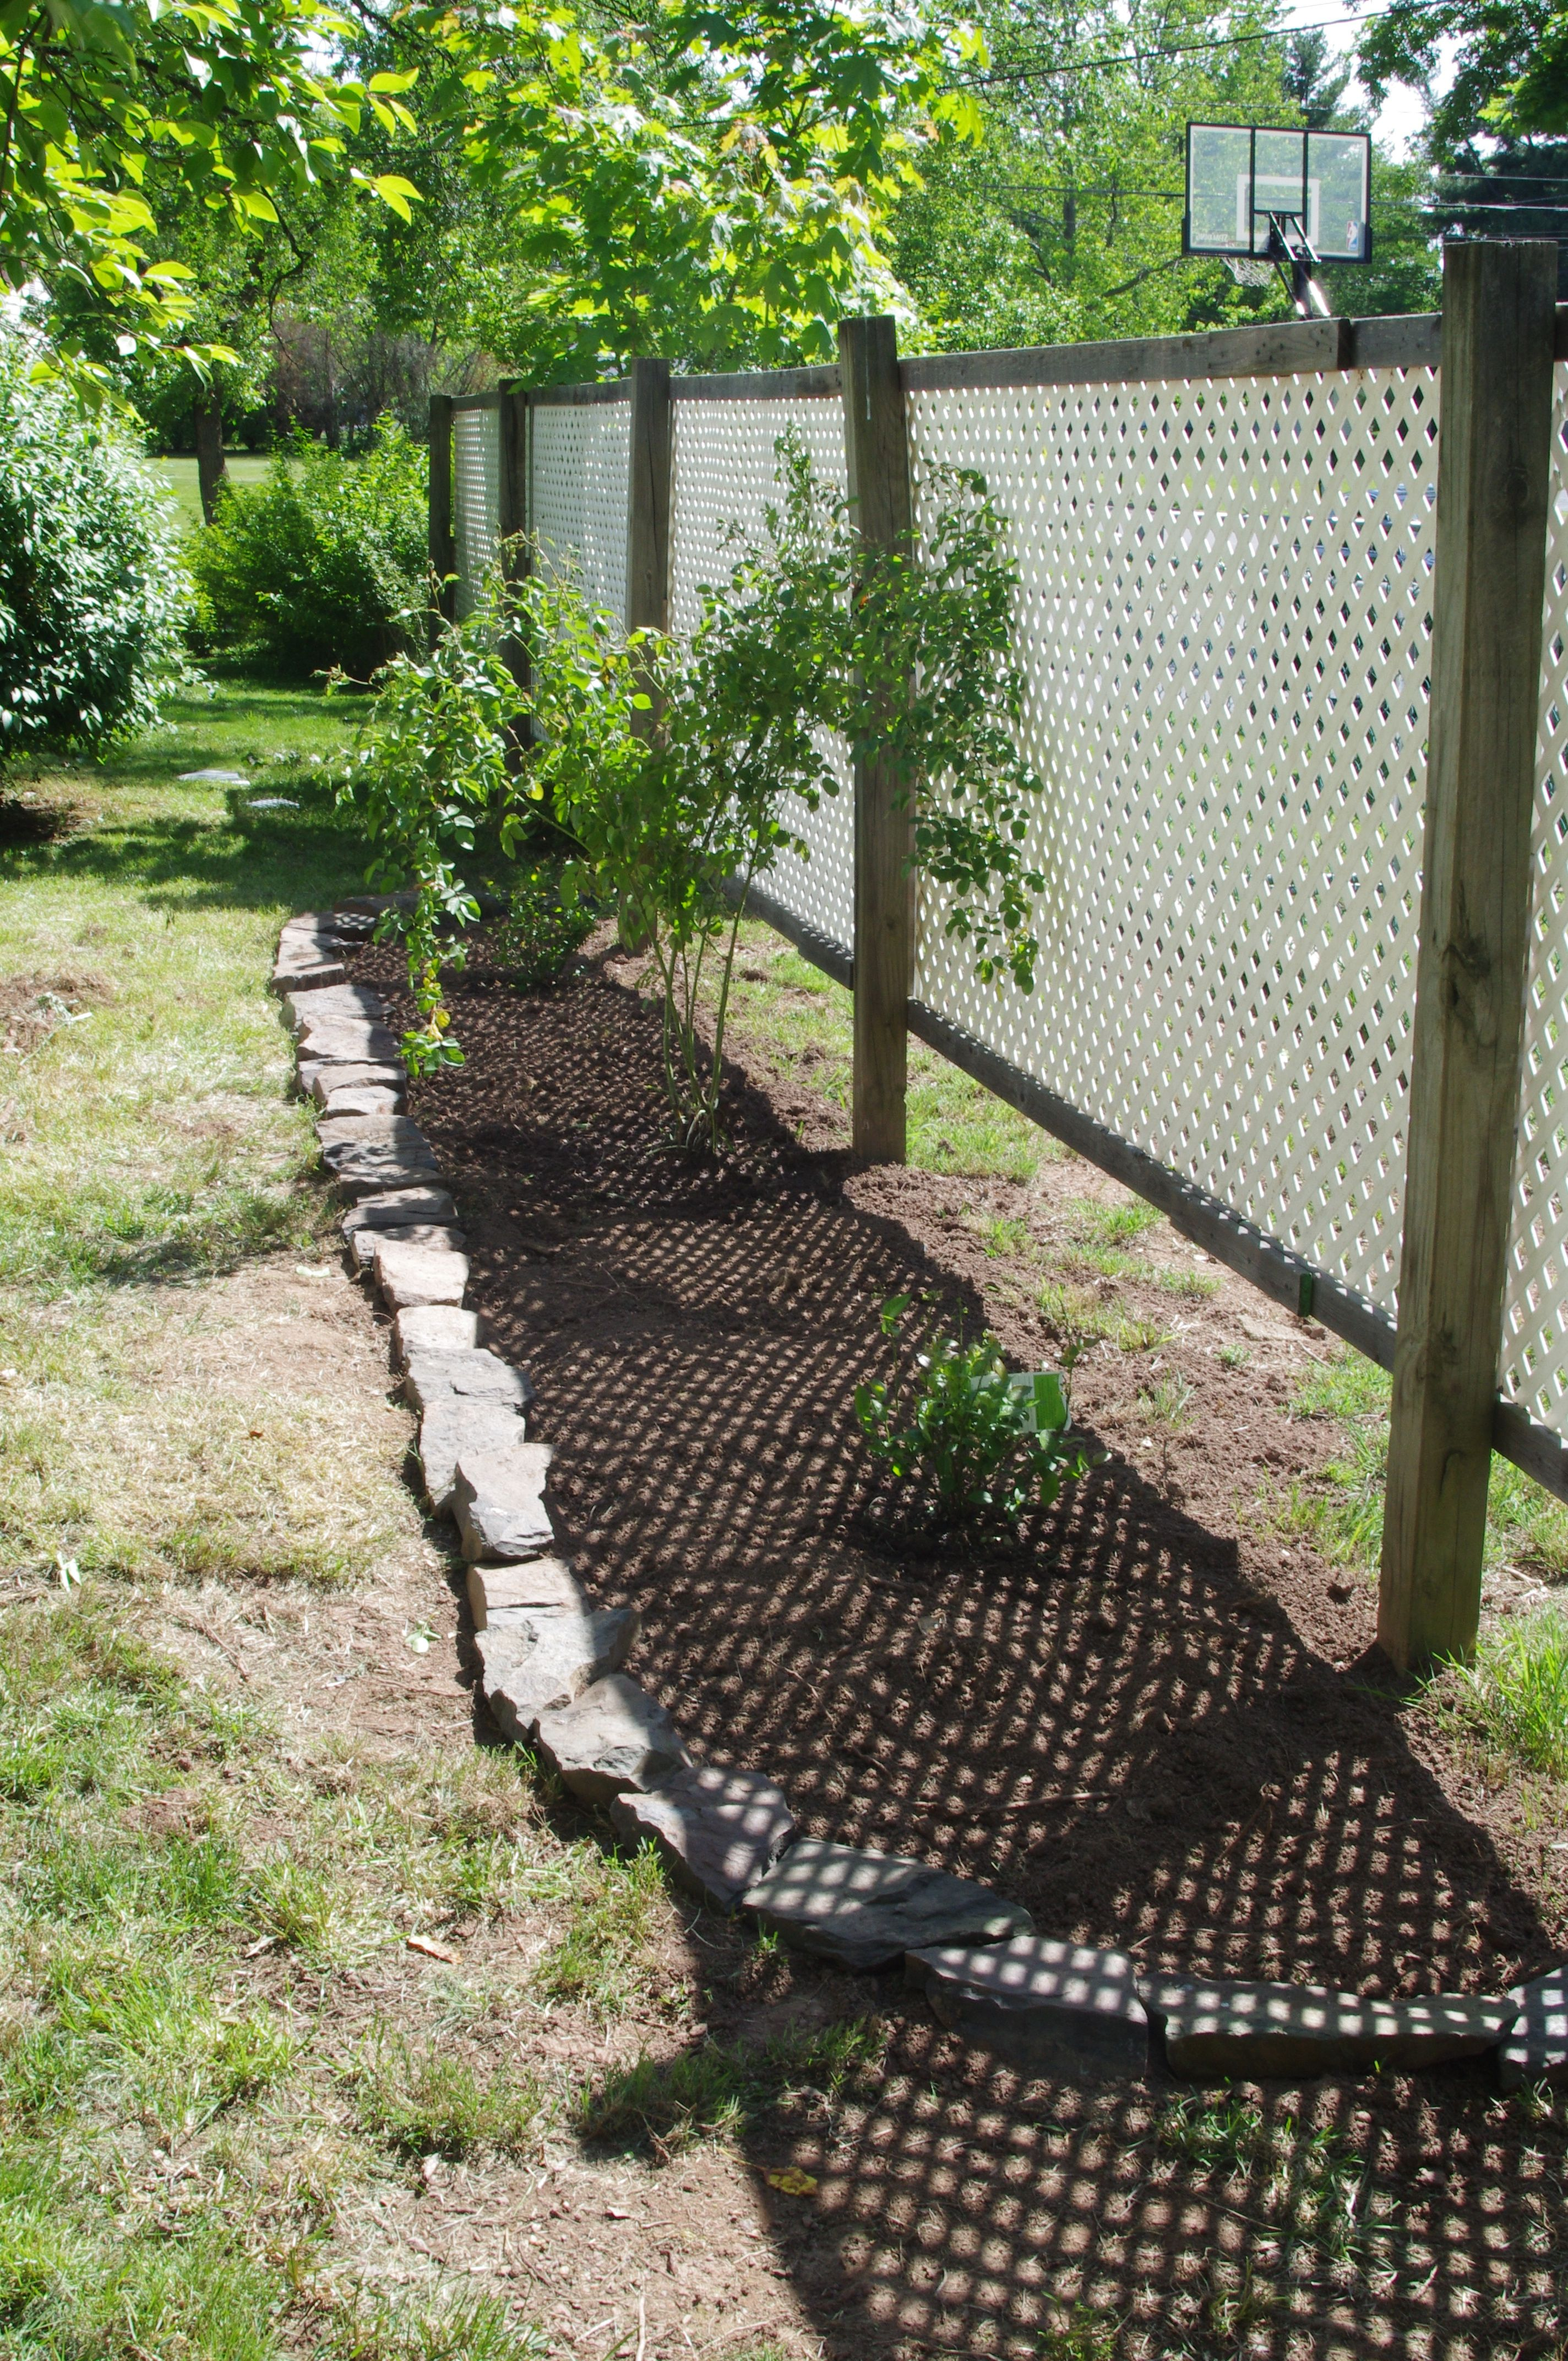 Vinyl lattice supported by posts to grow climbing plants on or to